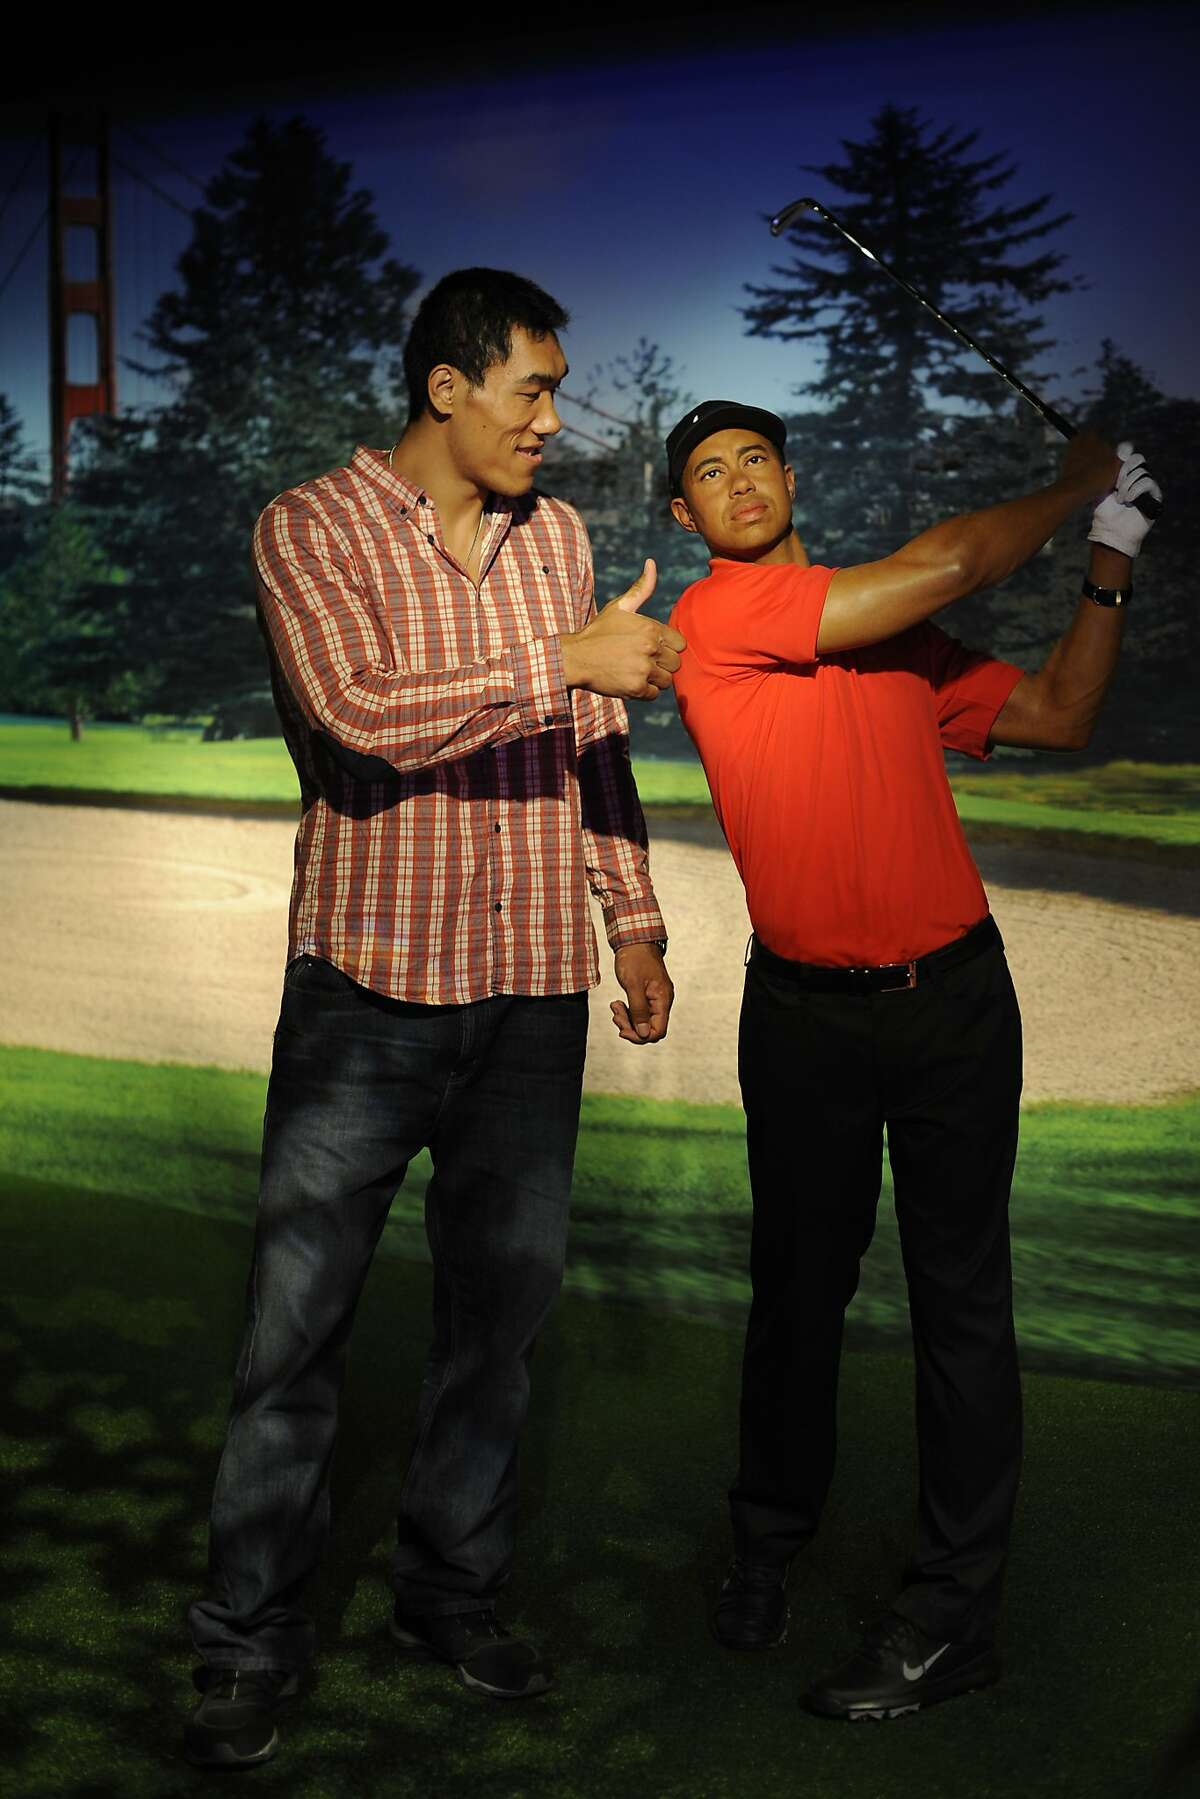 Taishan Dong poses with a wax figure of Tiger Woods at Madame Tussauds on July 16, 2014 in San Francisco, CA. Taishan is a Chinese heavyweight boxer who will fight at the Longshoreman's Hall on July 18th.